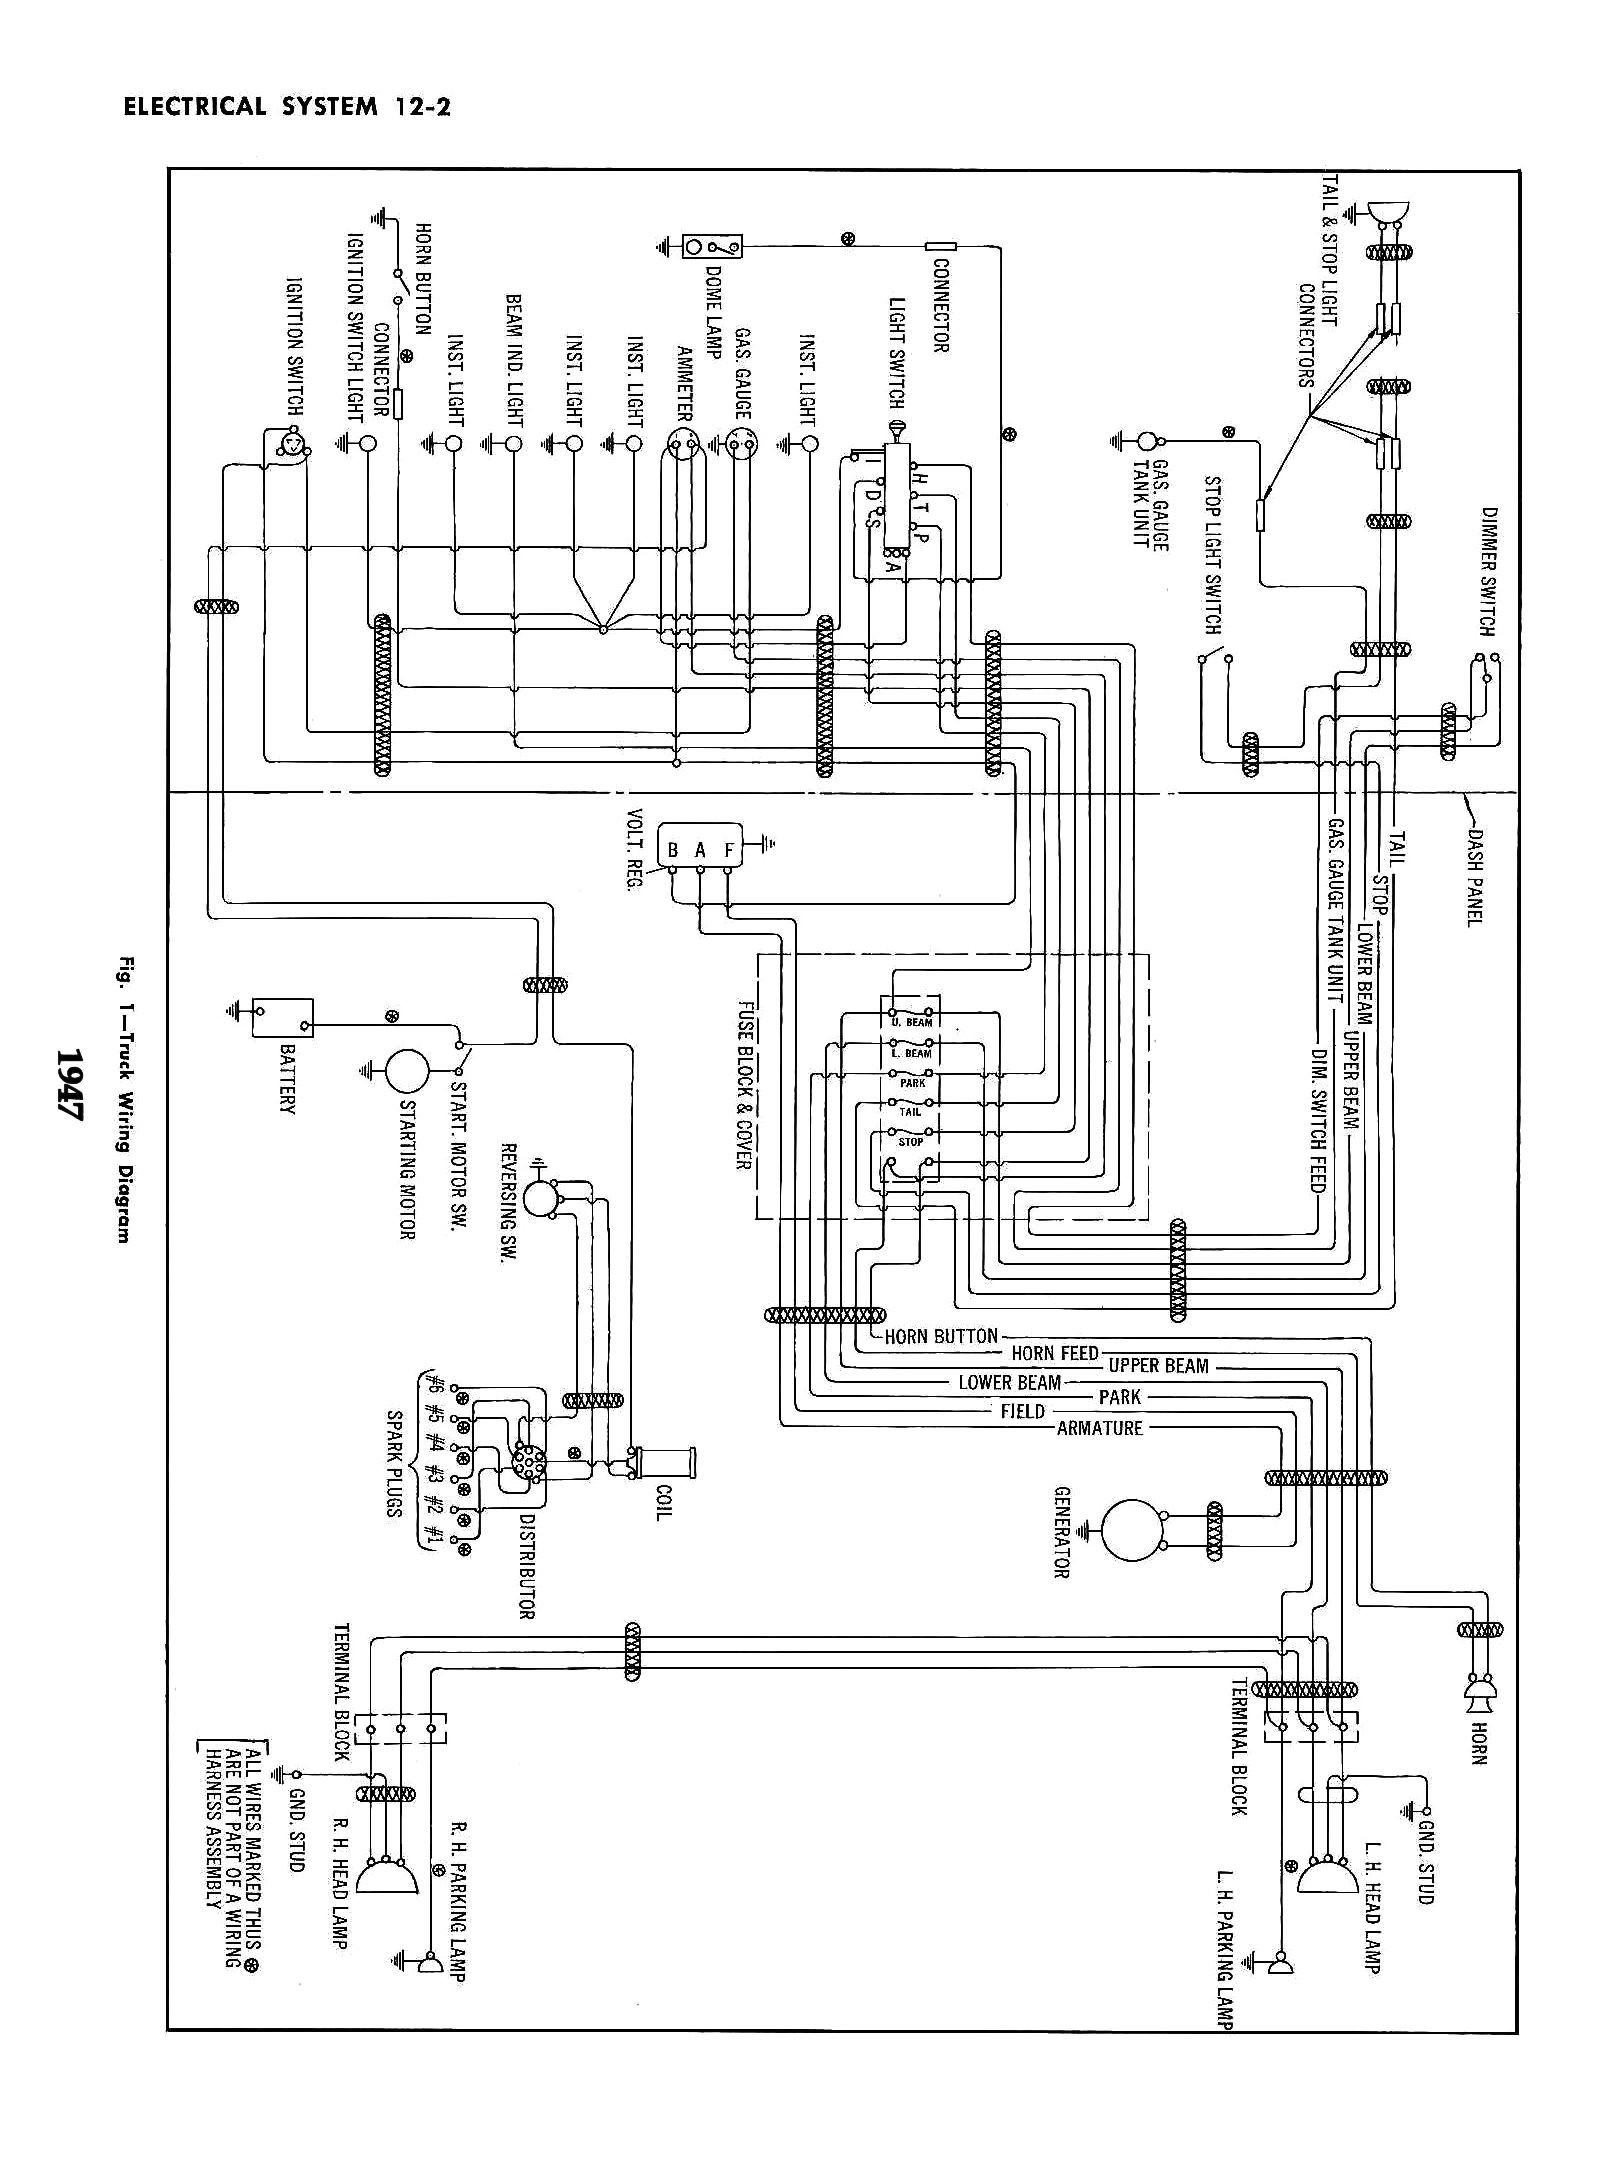 File Name: Ford 8n Tractor Wiring Harnes Diagram